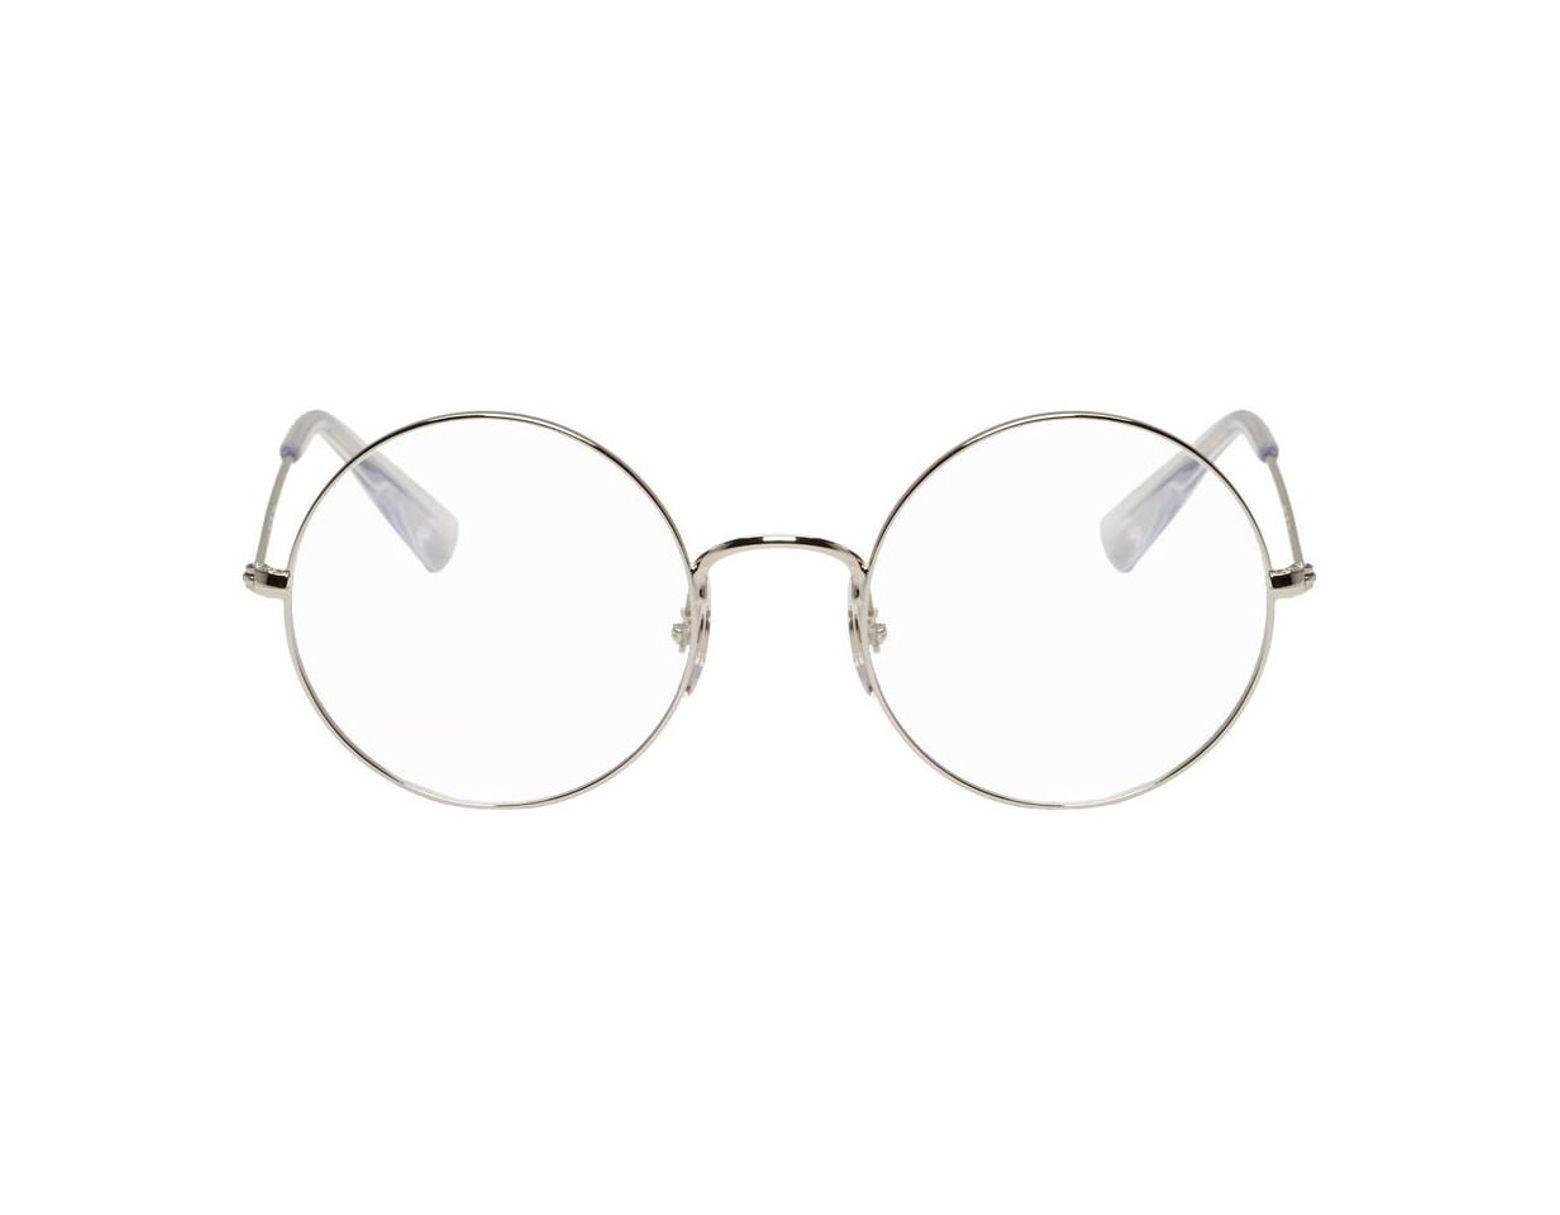 cdd944d63 Ray-Ban Silver Ja-jo Round Glasses in Metallic for Men - Lyst